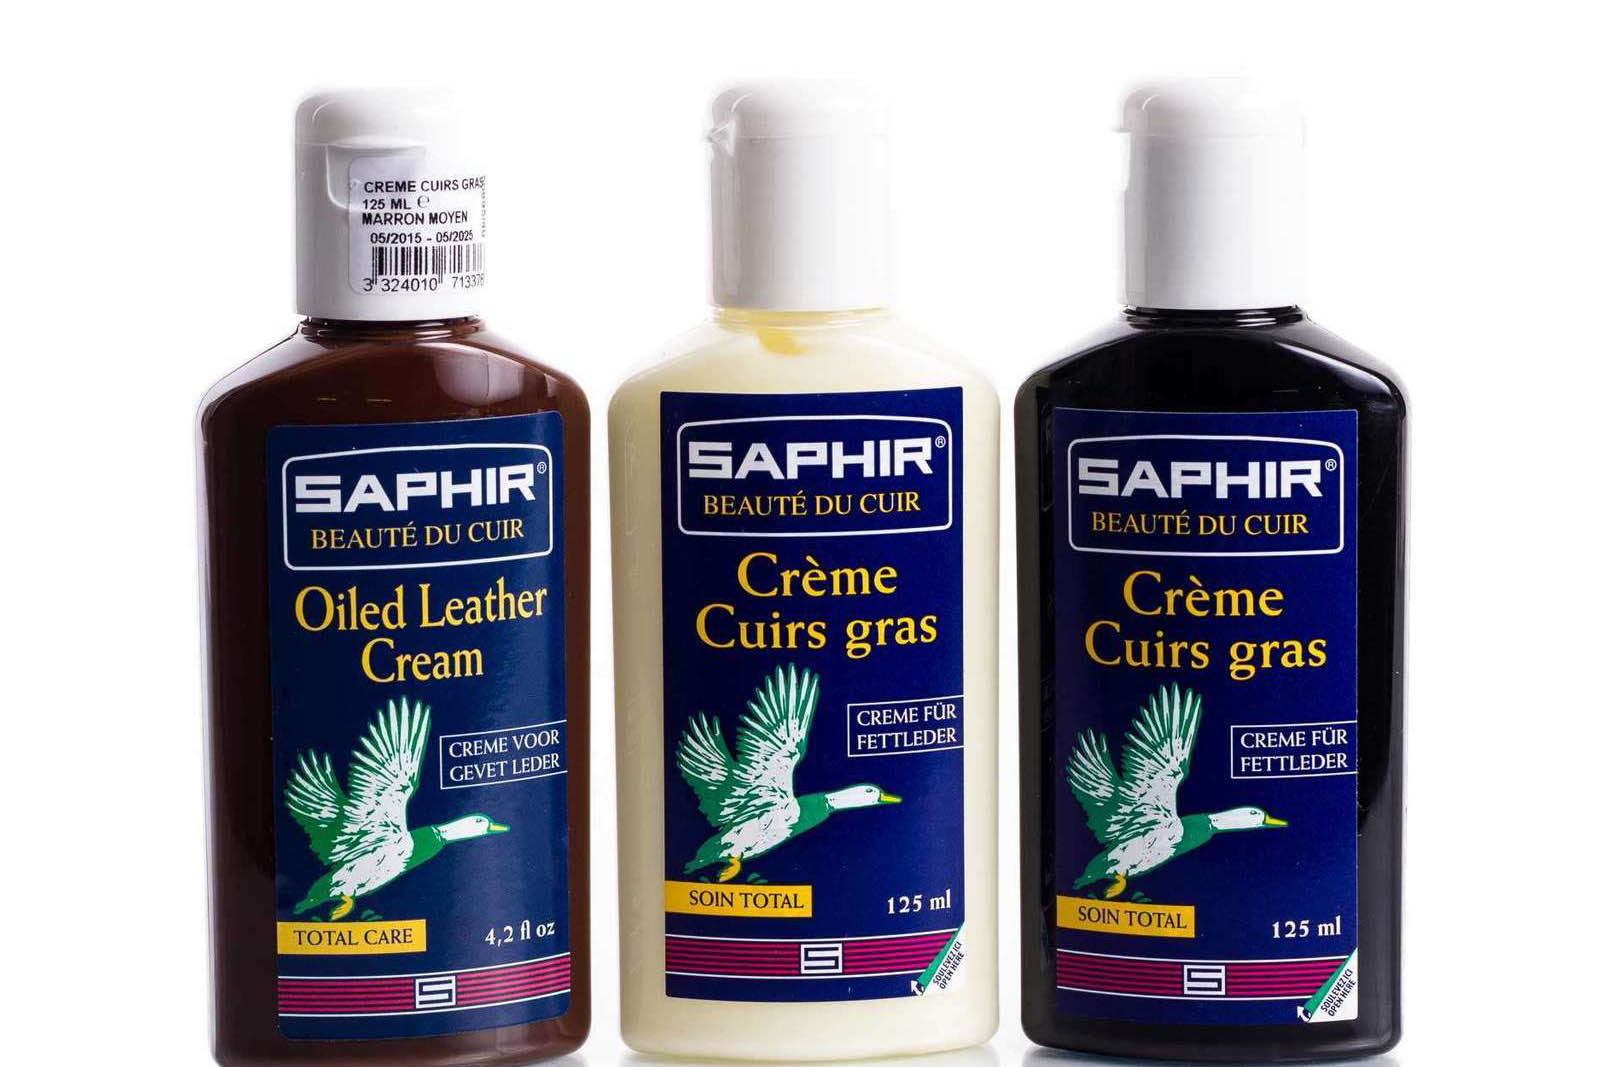 Oily Leather Cream 125ml - Saphir Beauté Du Cuir - Bootblack